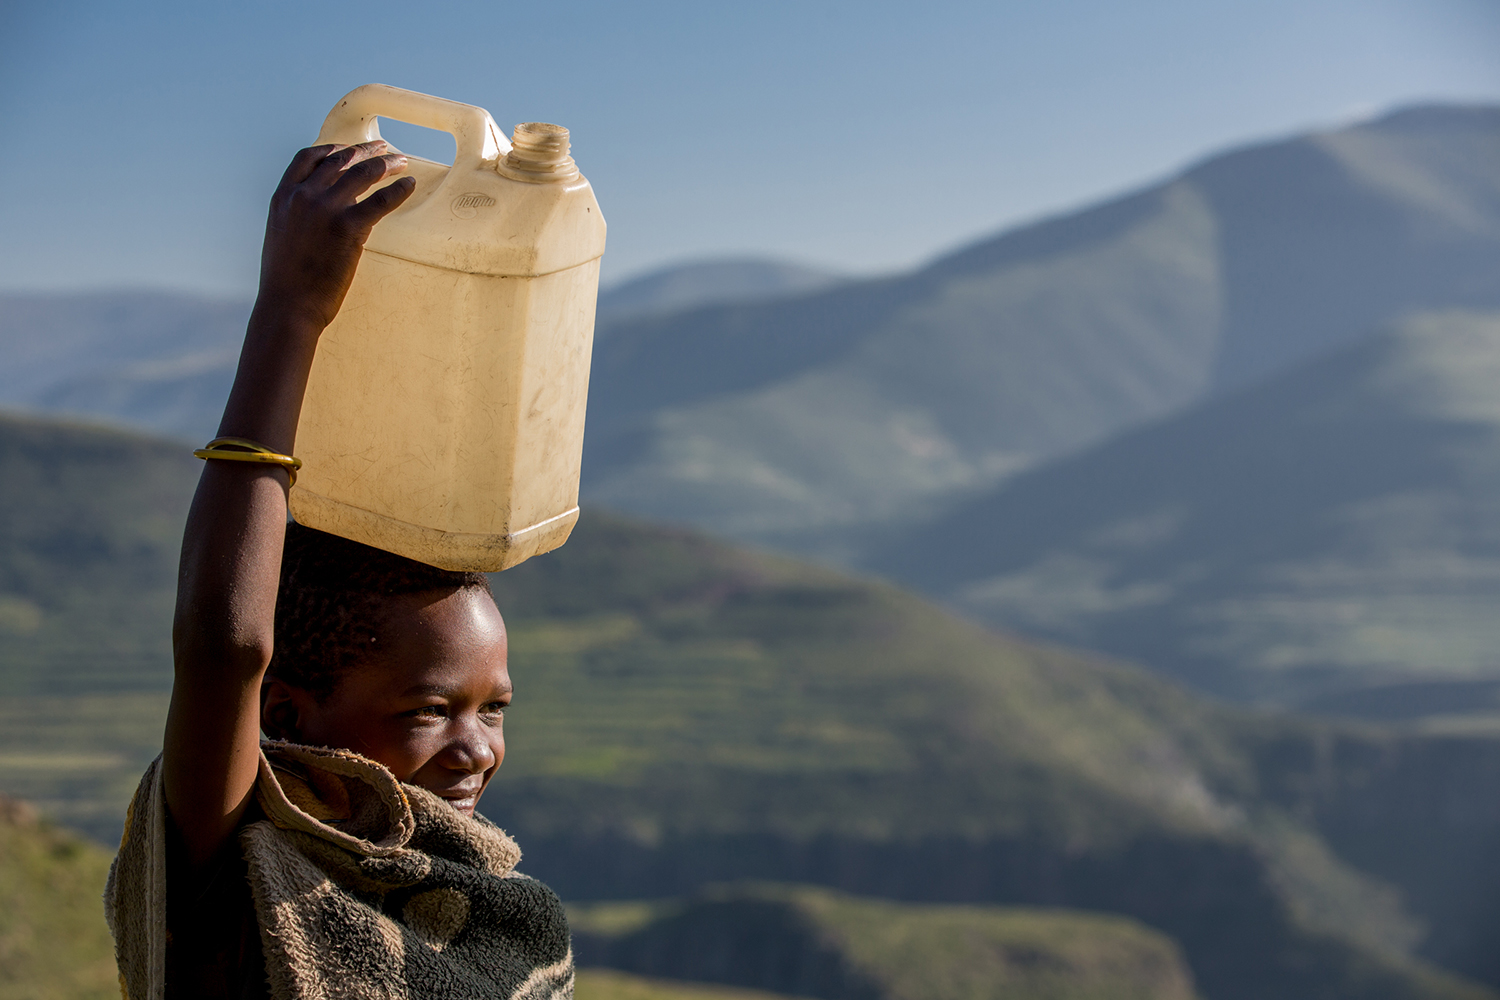 Botomelo Moahlodi (9yrs) collects water from their nearest well point in the Ha Khapiso Village, Lesotho (UNICEF/Schermbrucker)